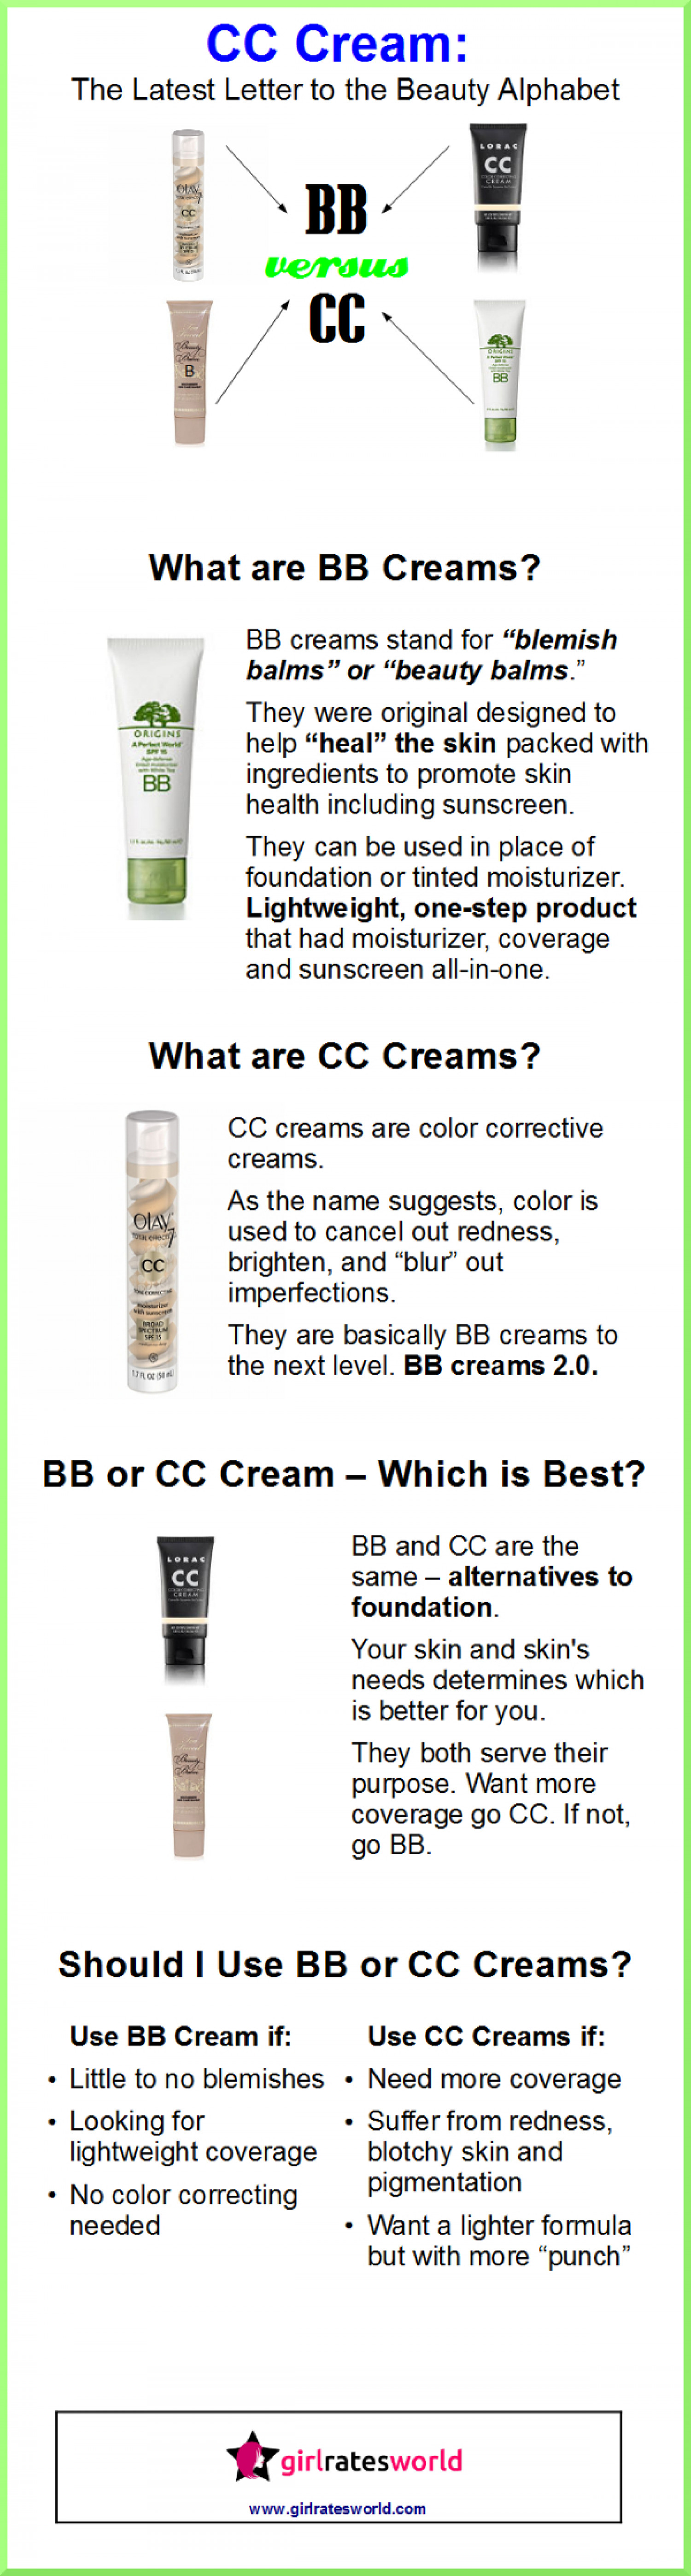 CC Cream versus BB Cream - Which Is Better? Infographic